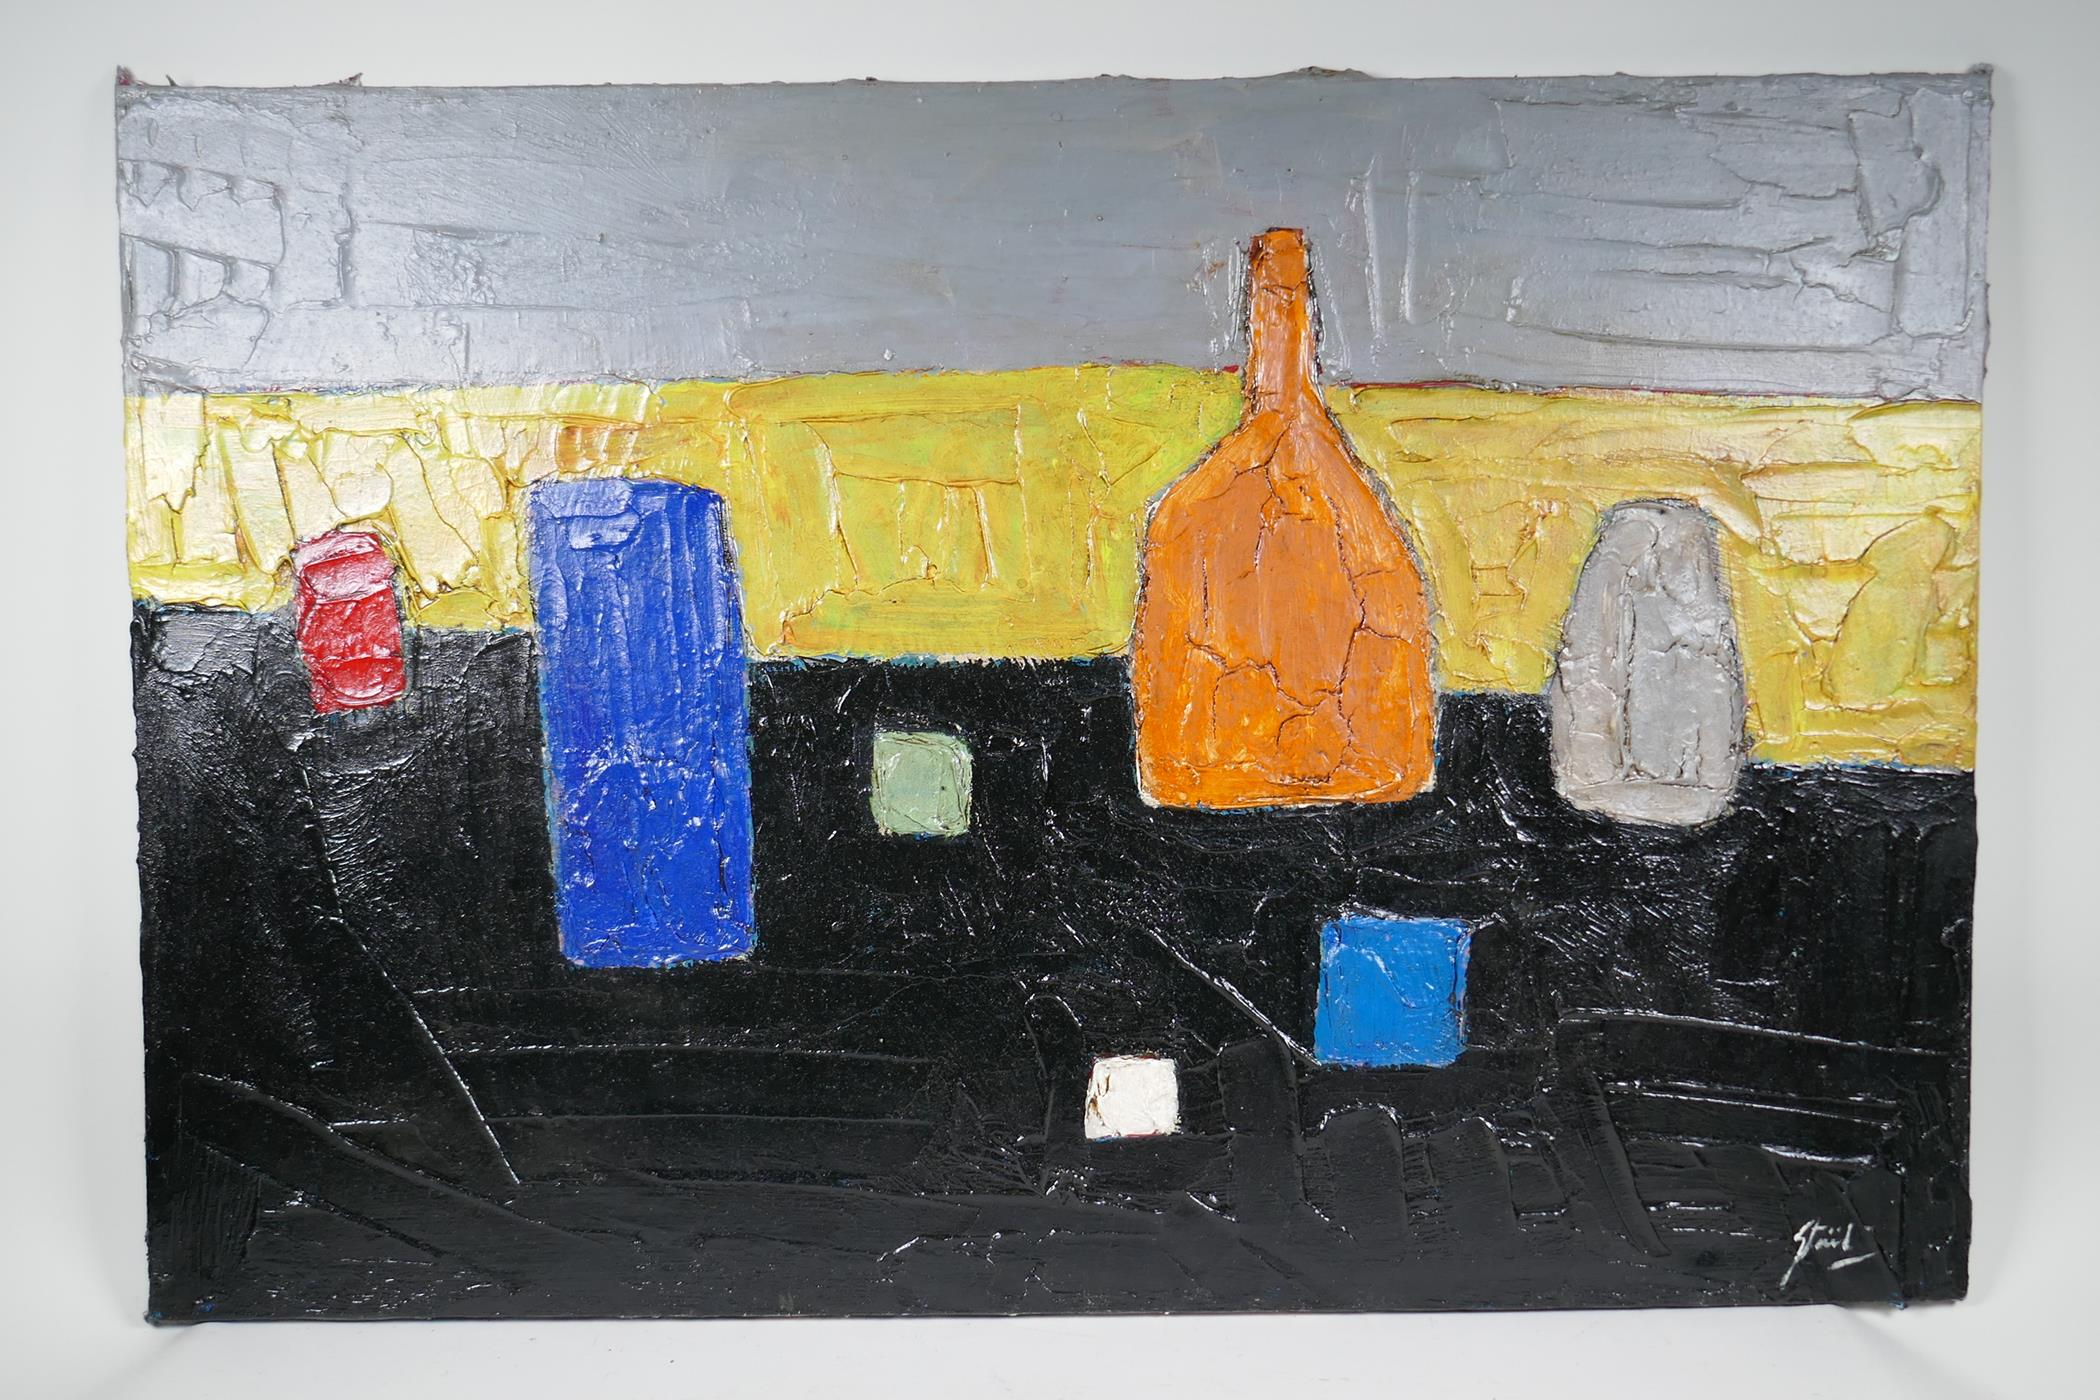 """After Nicolas de Stael, abstract still life of vases, impasto oil on canvas,unframed, 36"""" x 24"""" - Image 2 of 4"""